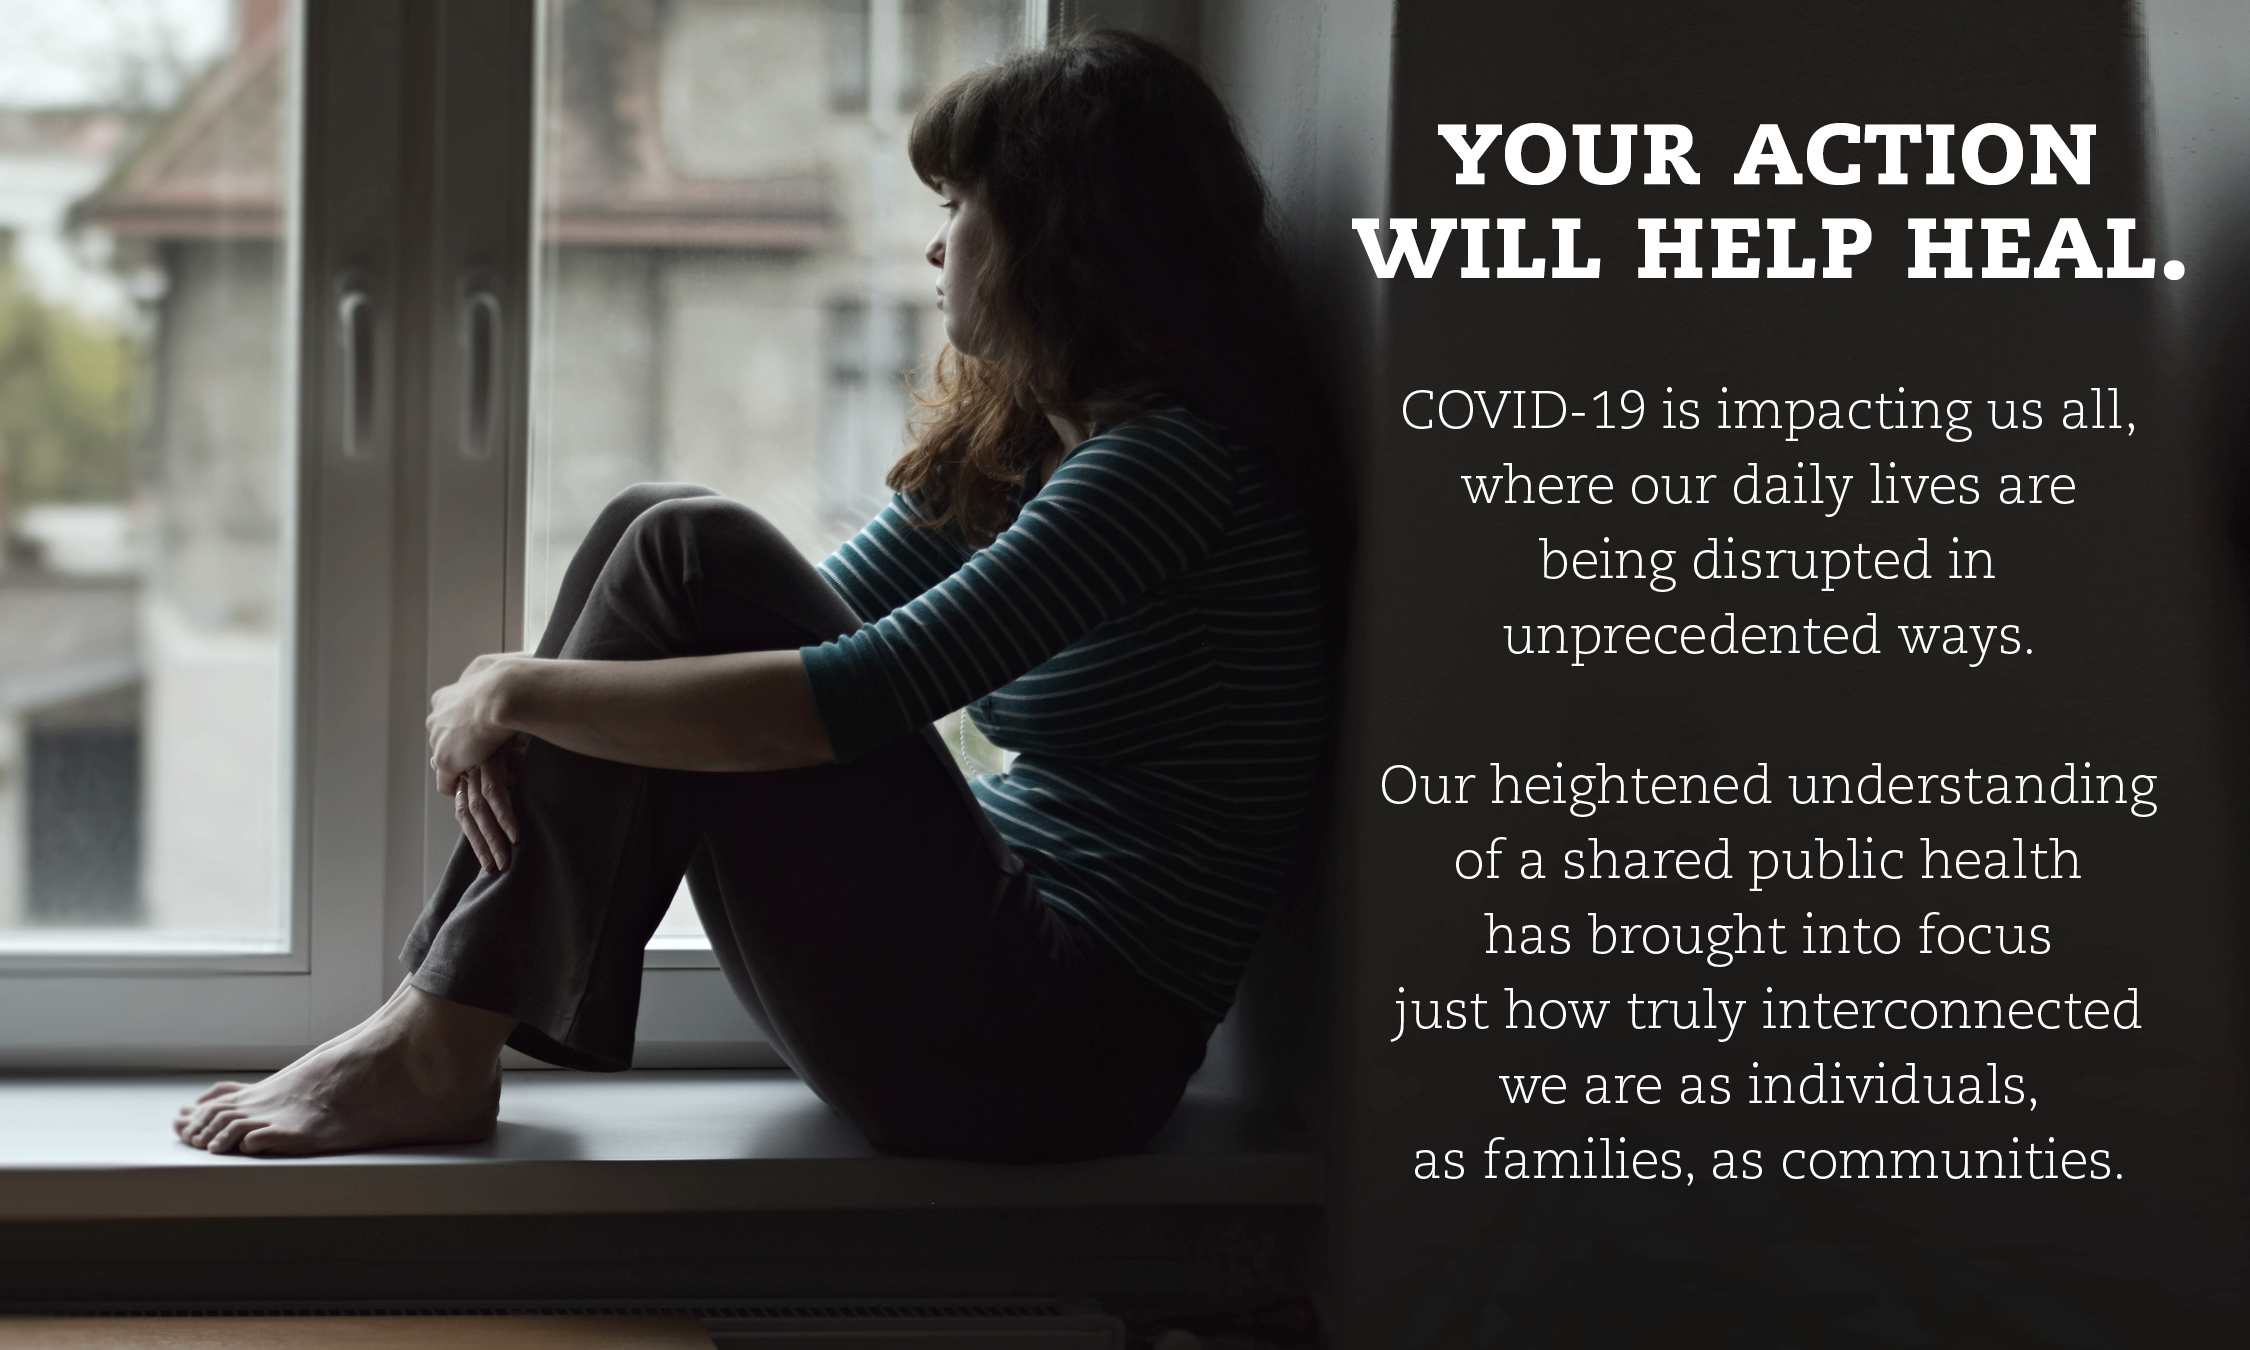 Your action will help heal during the COVID-19 pandemic.